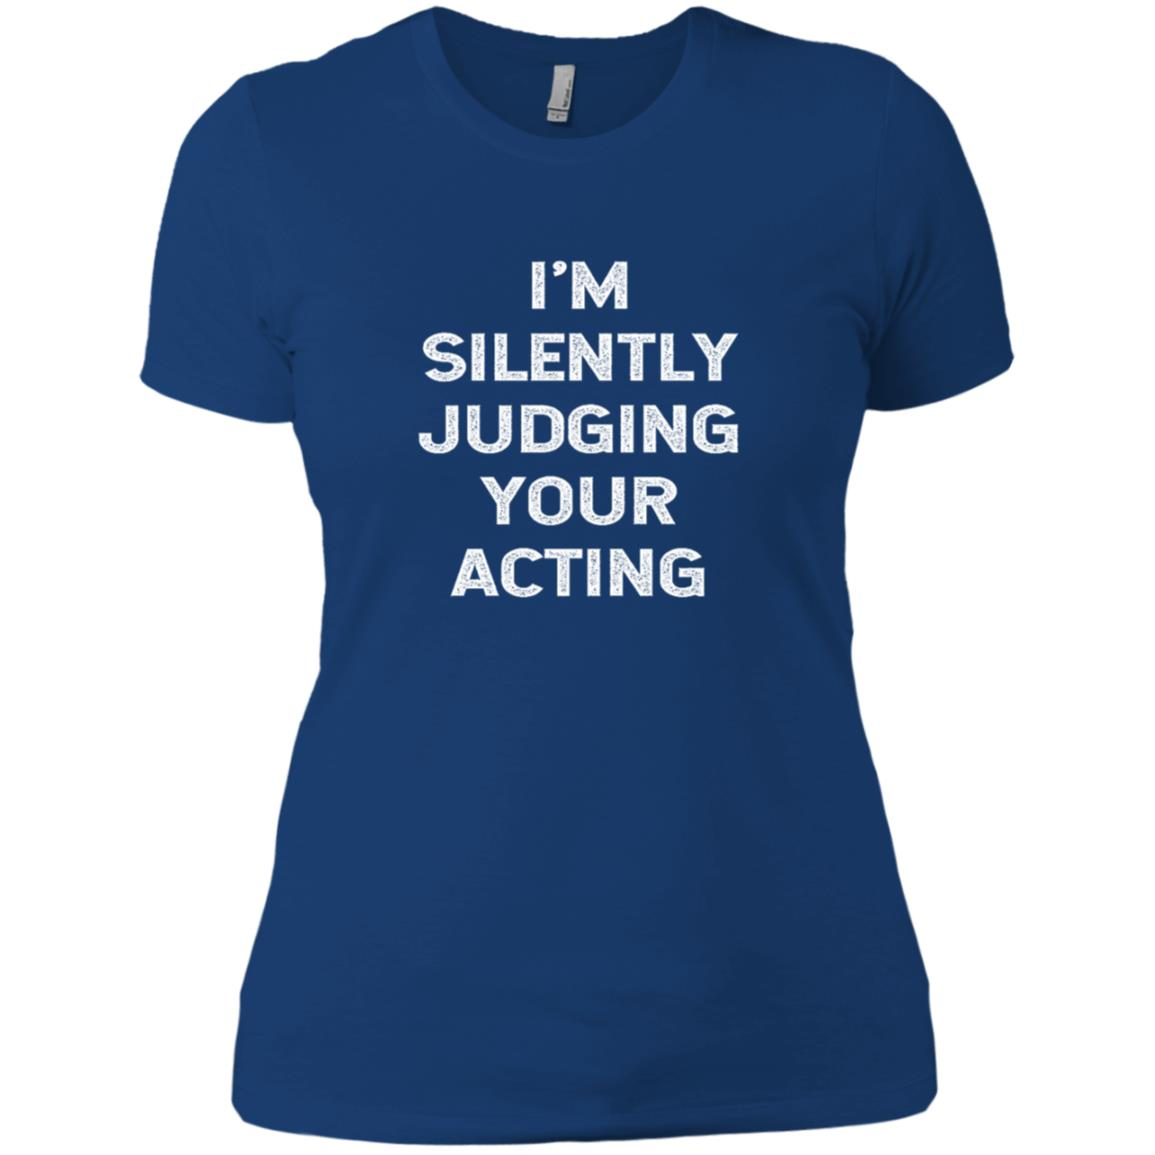 I'm Silently Judging Your Acting Theatre Director Ls Women Short Sleeve